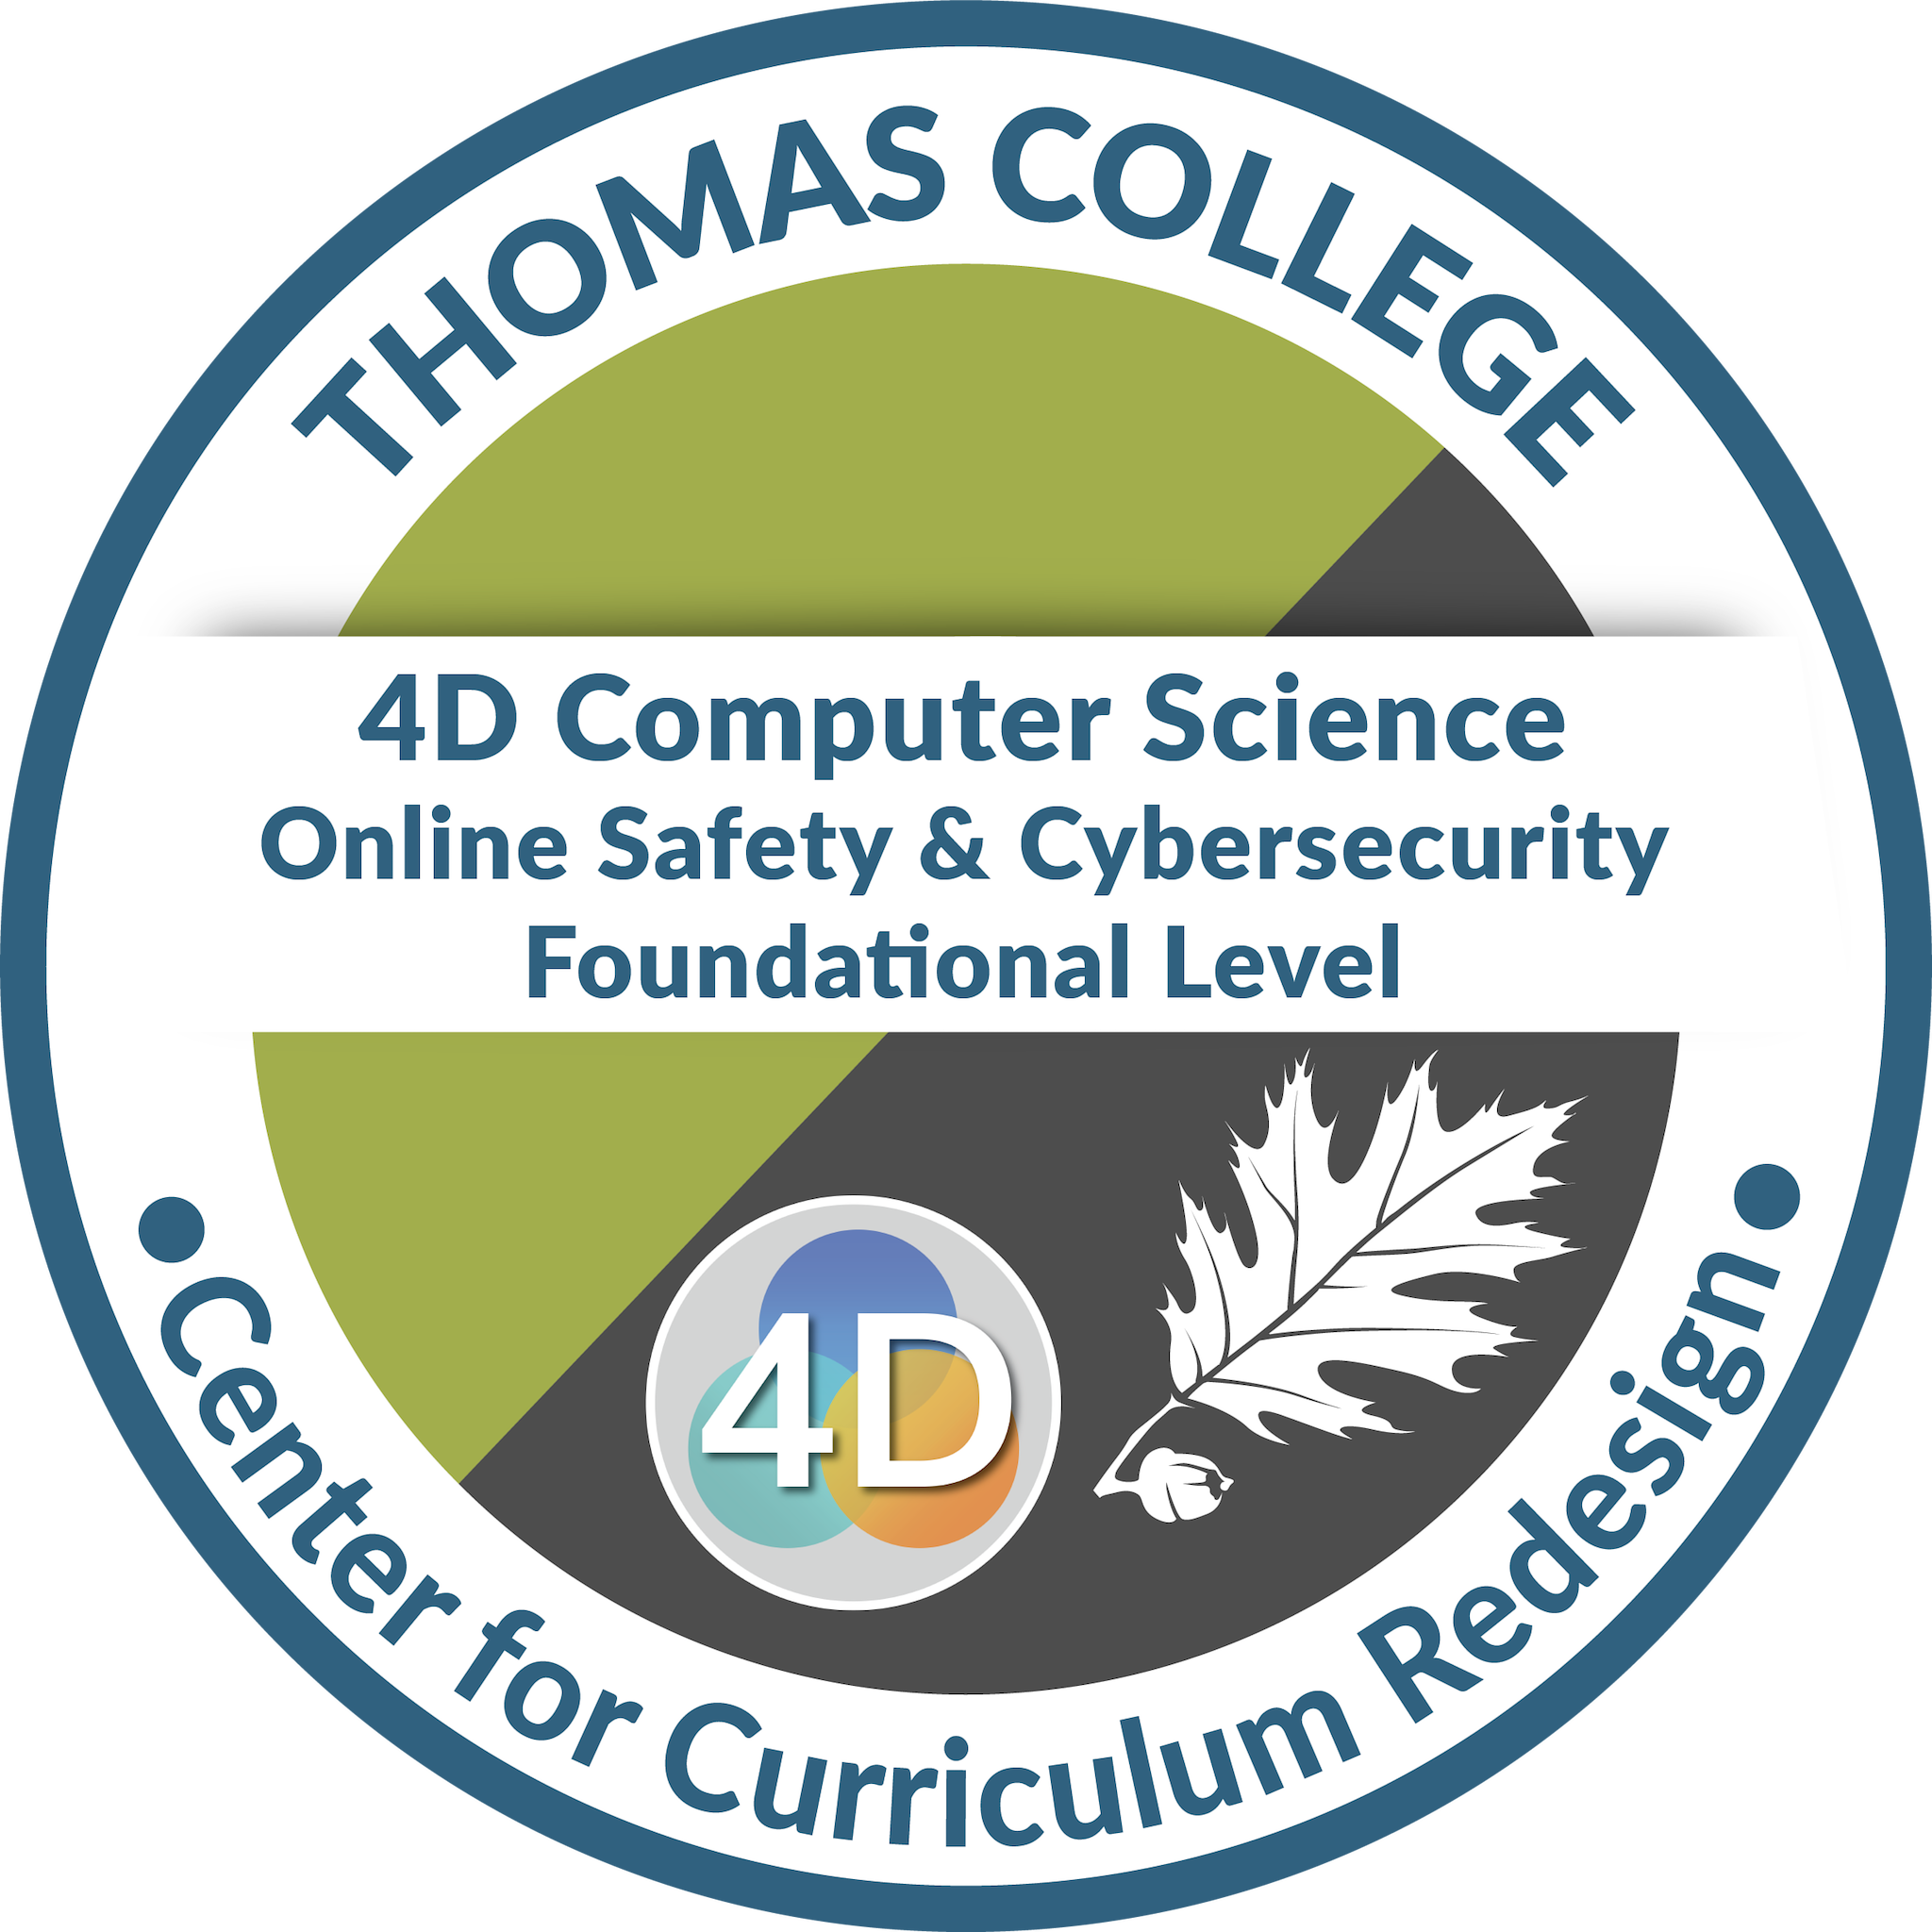 4D Computer Science: Online Safety & Cybersecurity